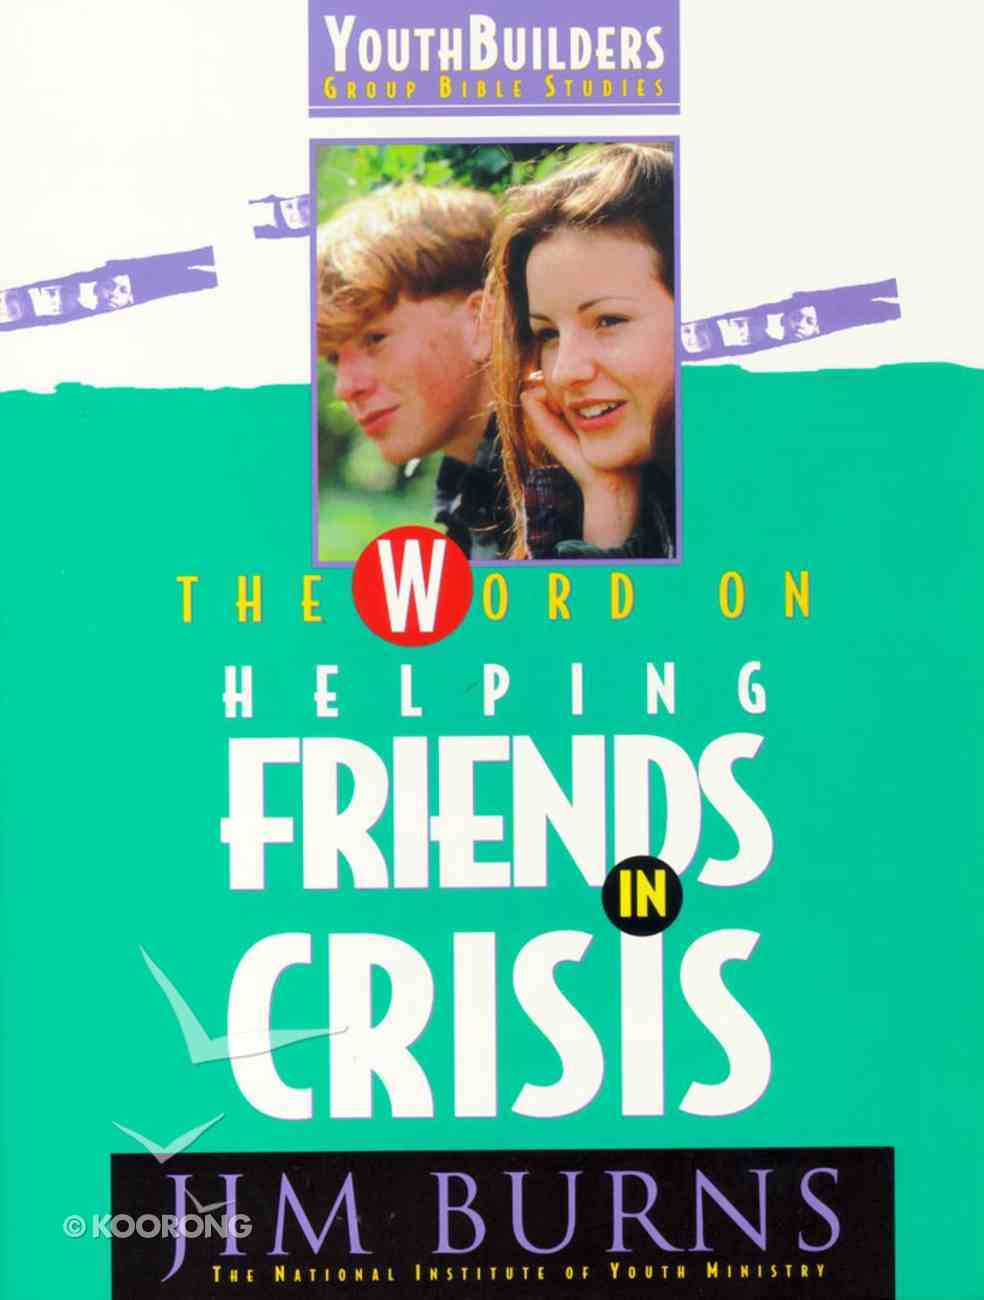 The Youth Builders: Word on Helping Friends in Crisis (Youth Builders Bible Studies Series) Paperback